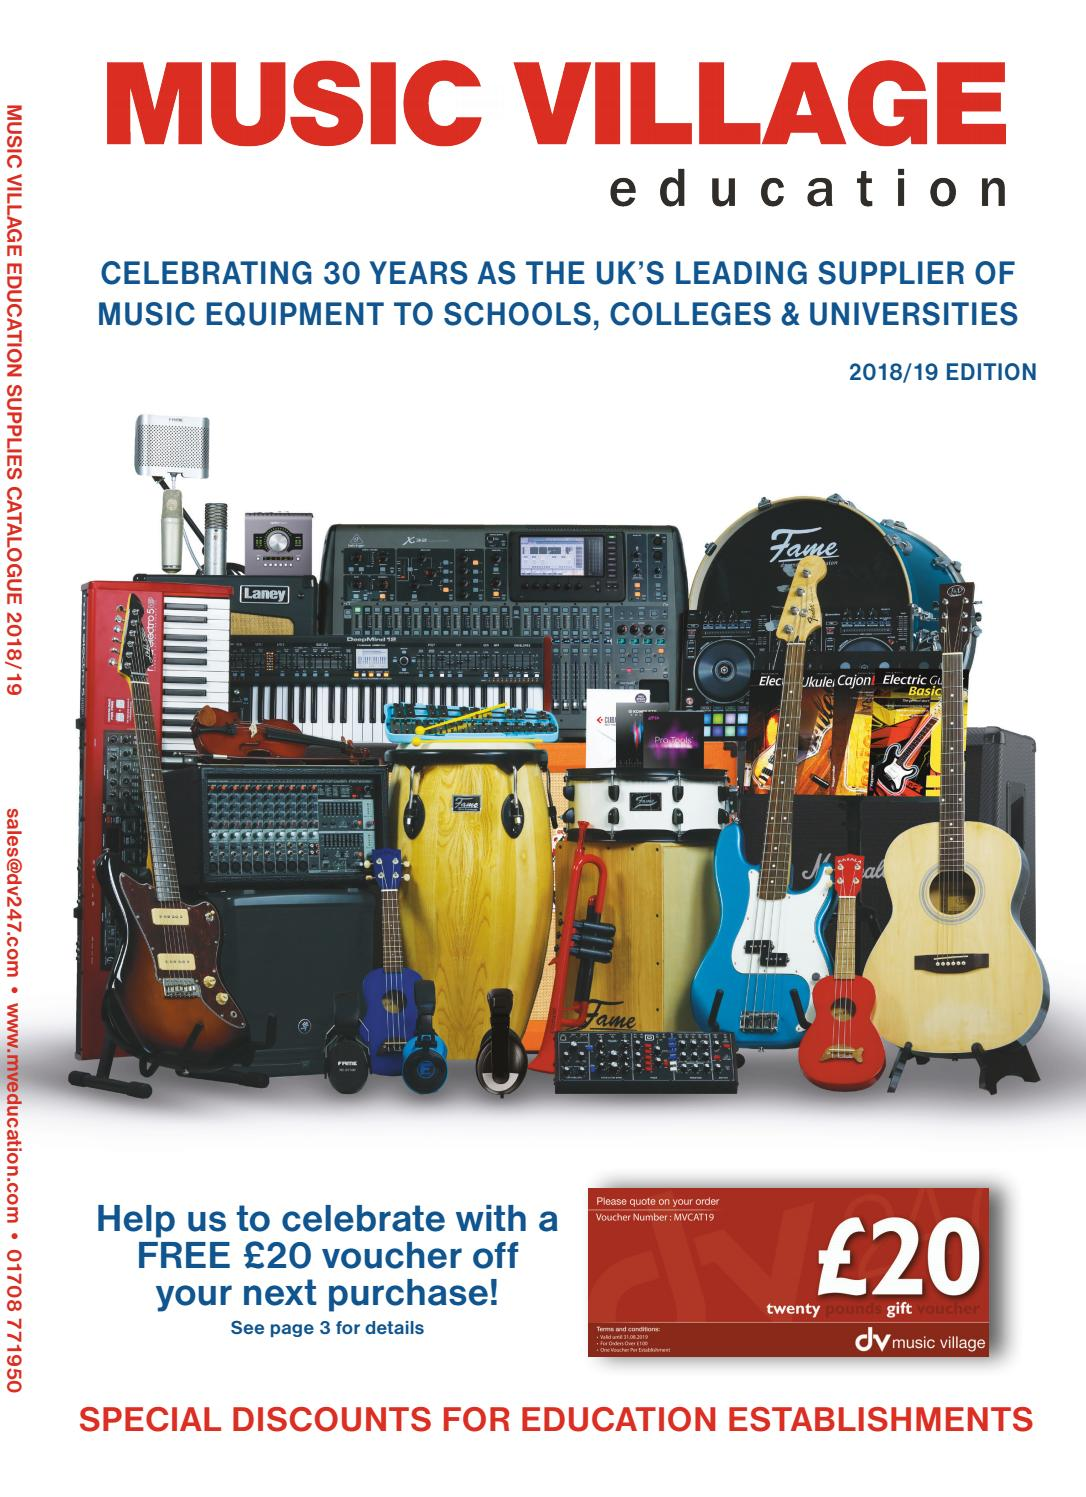 Music Village Education 2018 2019 Edition By Dv247 Issuu Model No 351 211811 Wiring Diagram